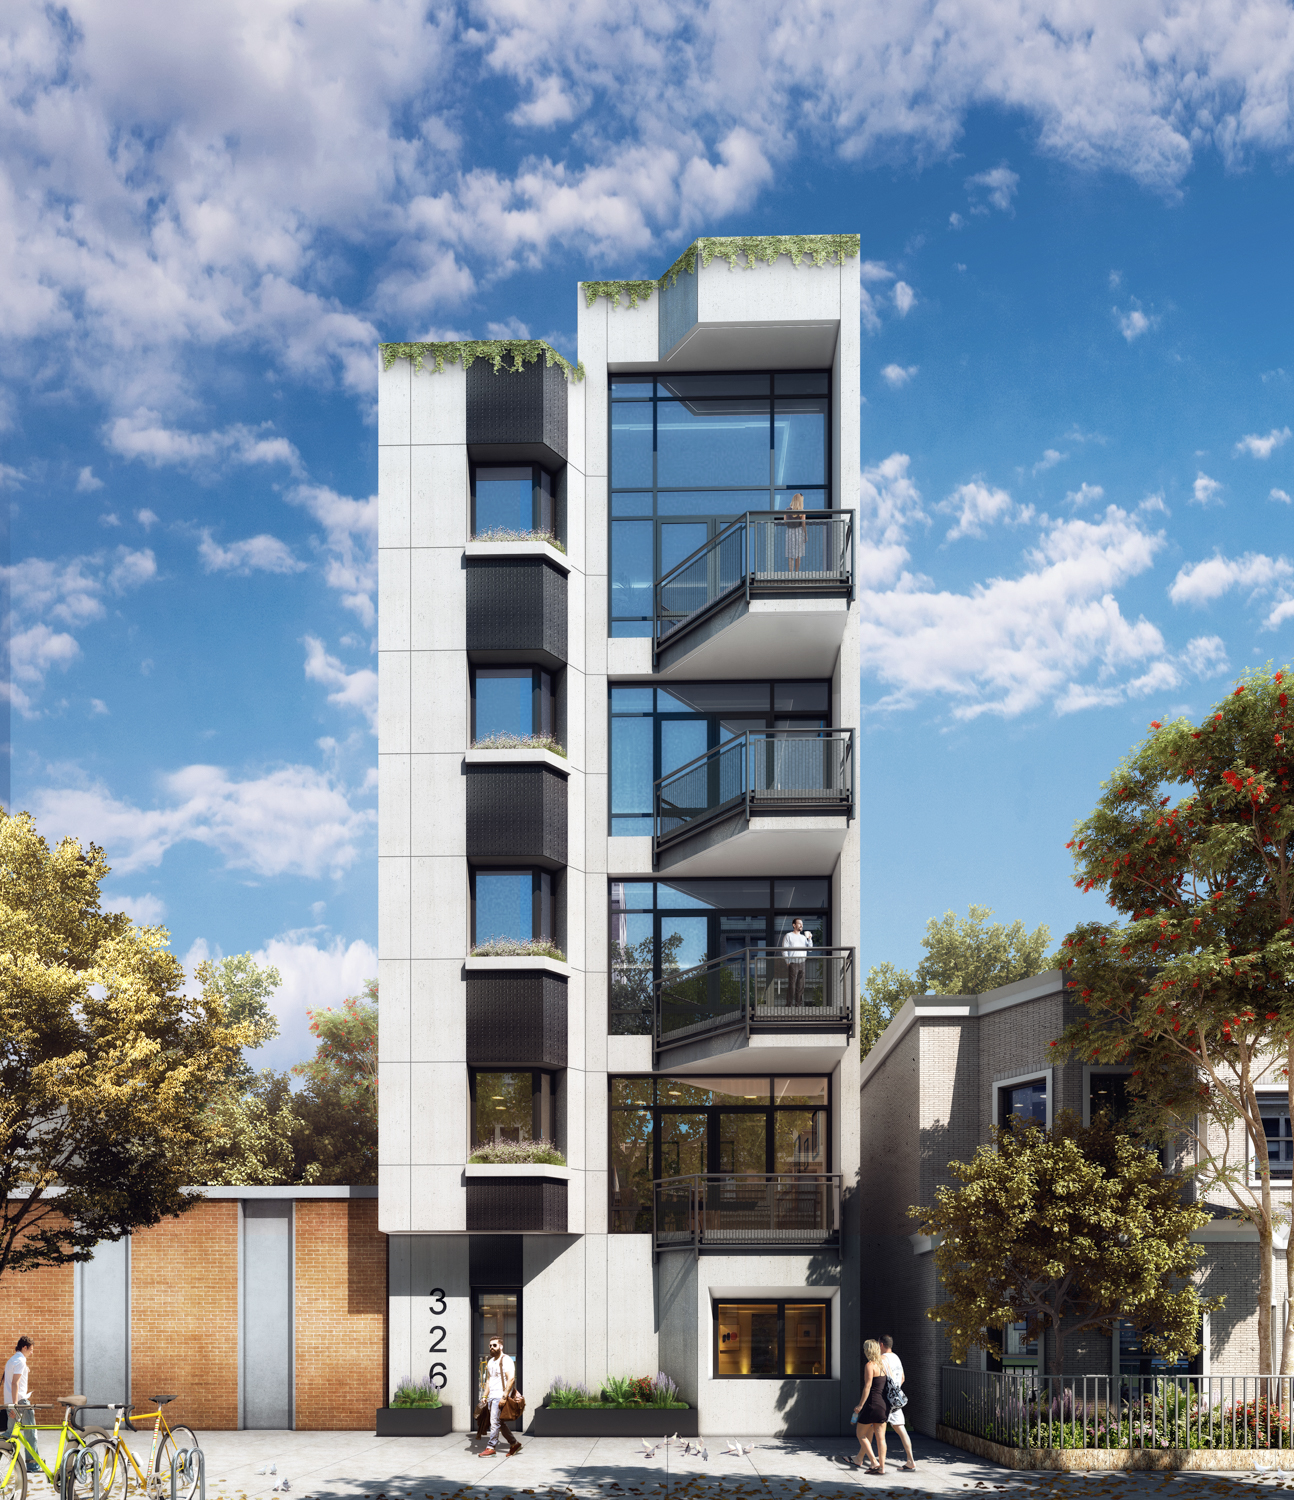 326 Avenue U, rendering by IMC Architecture